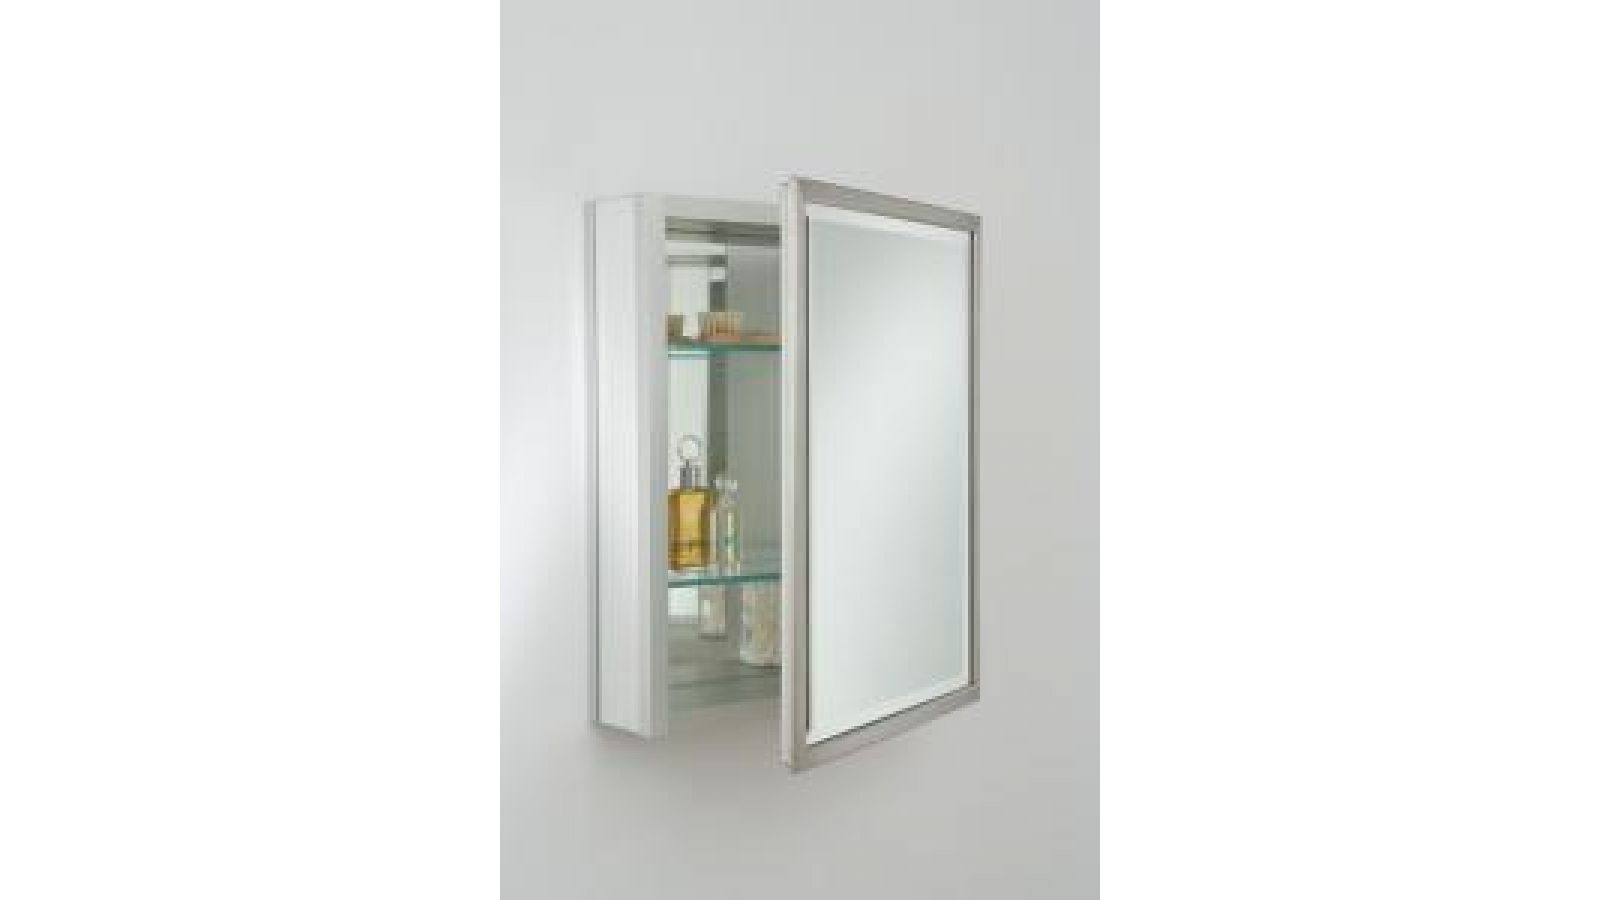 S Series Thin Metal Frame - Brushed Nickel Finish